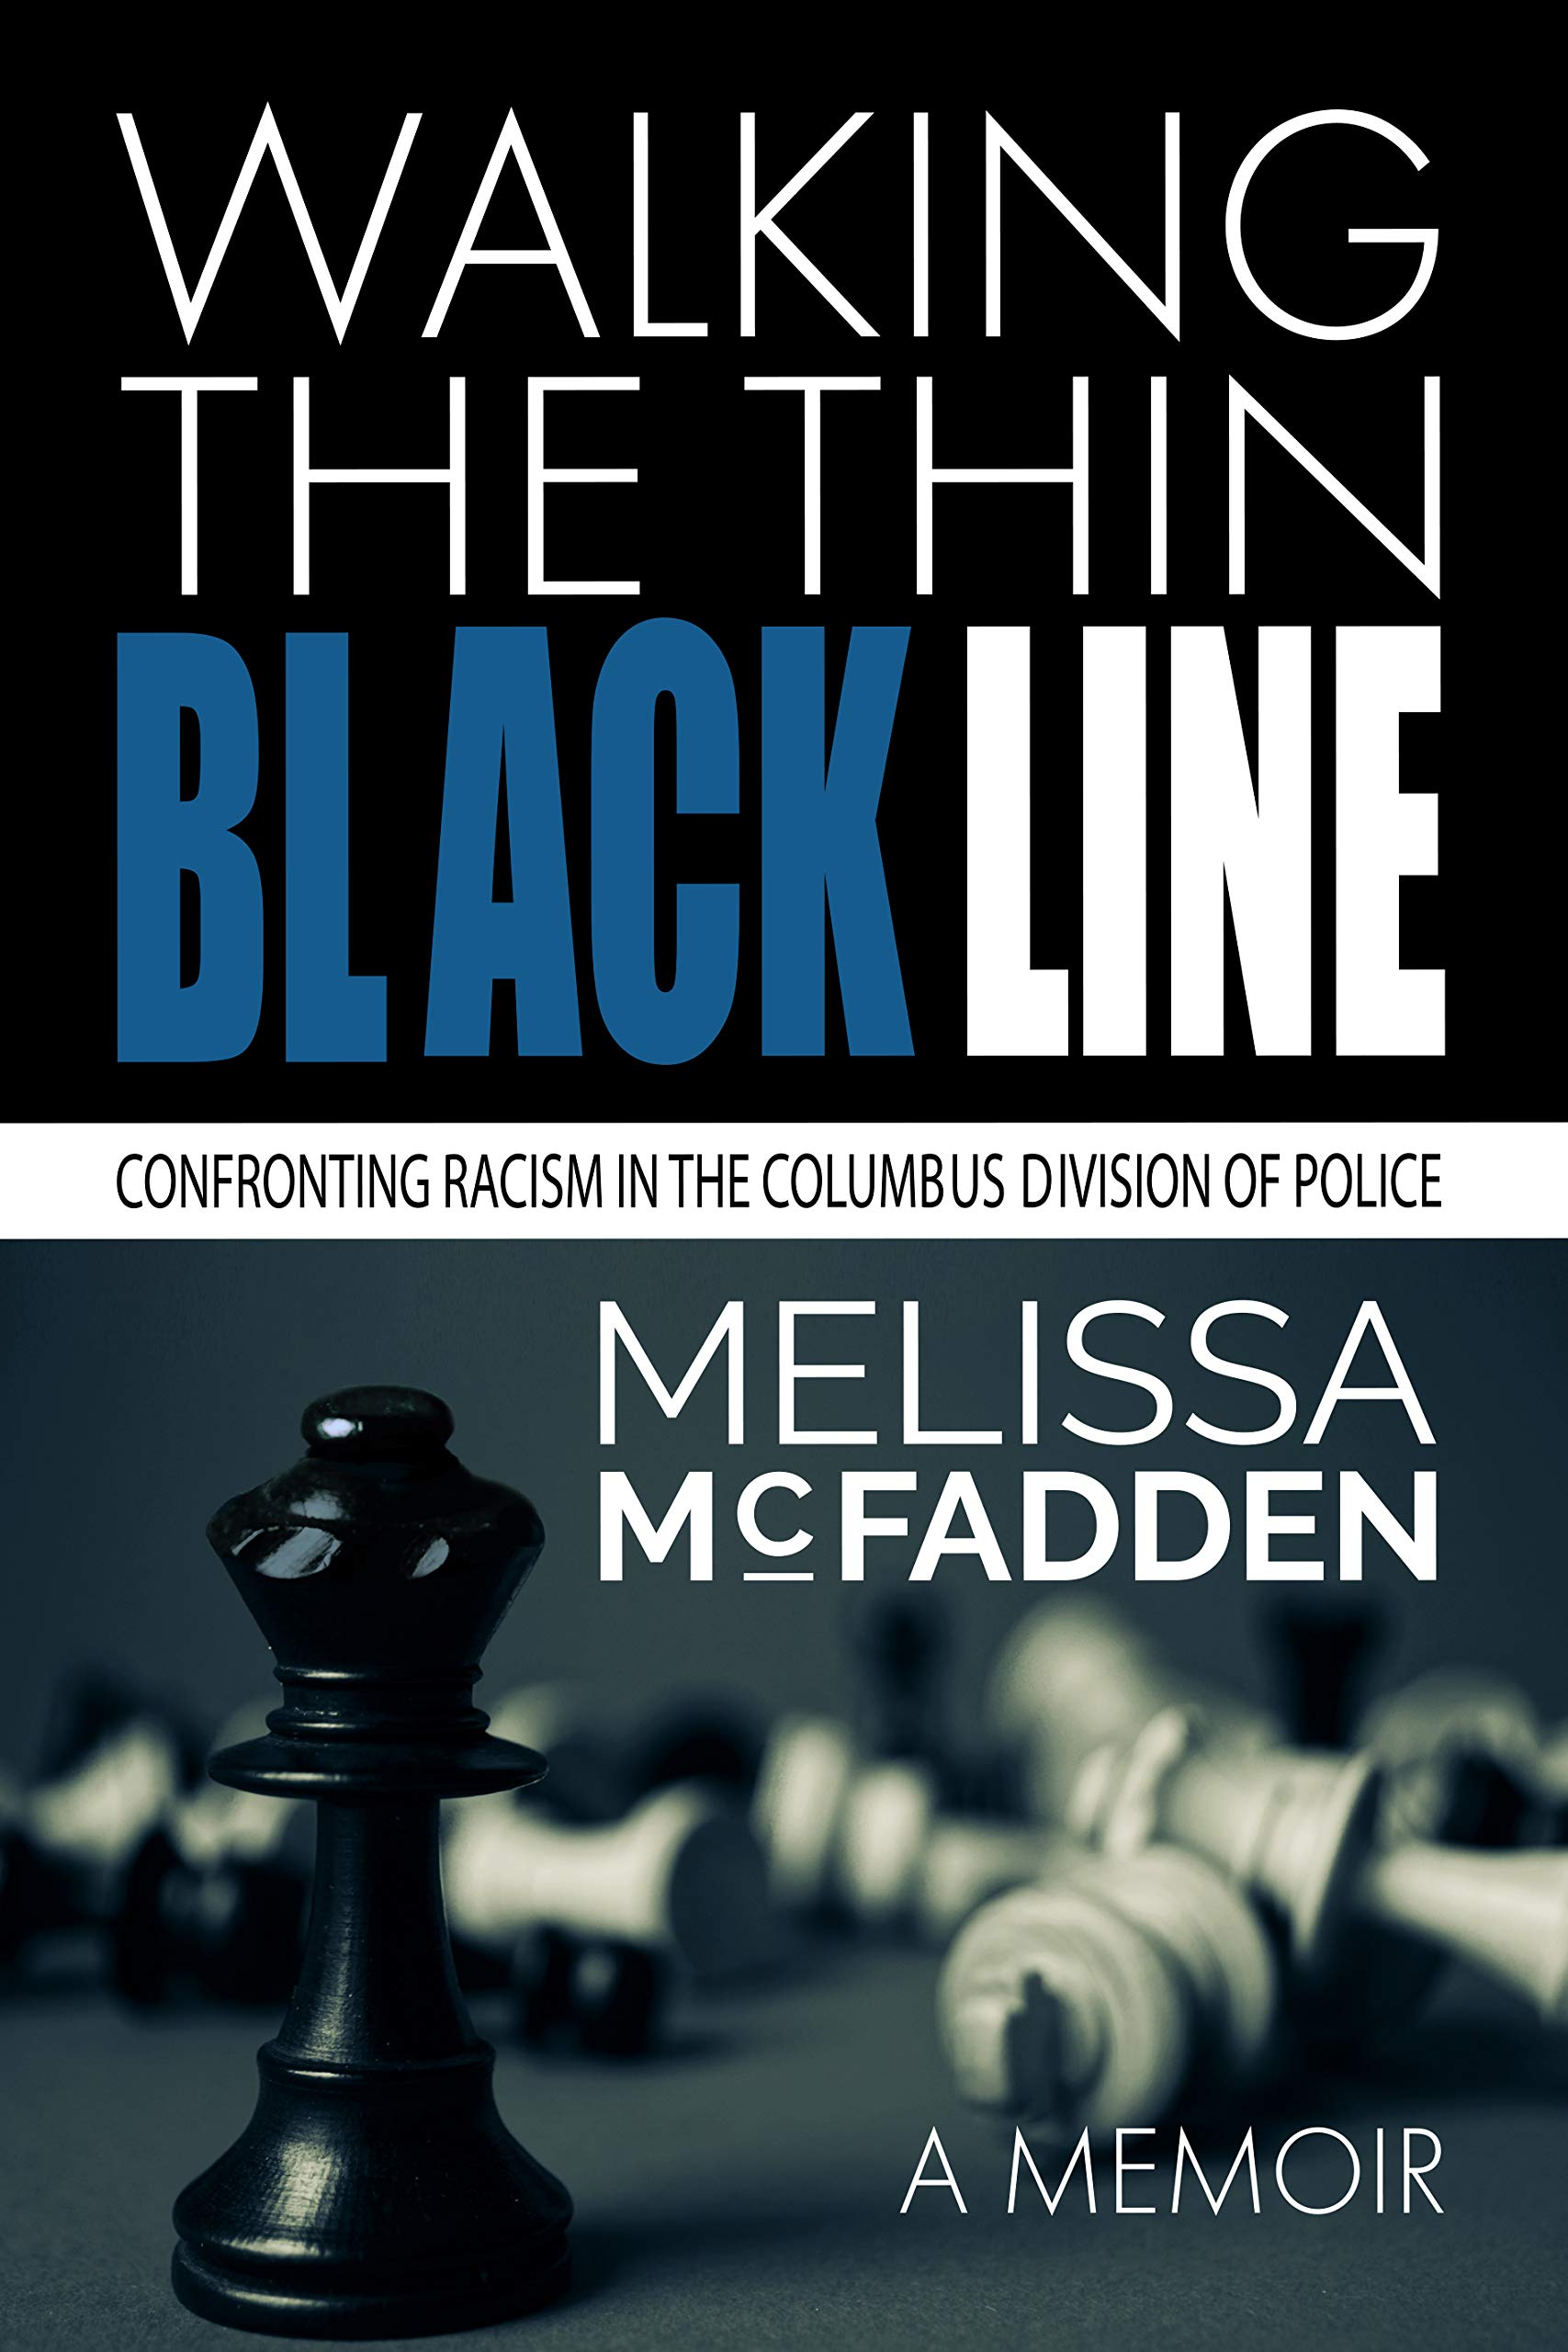 Walking the Thin Black Line: Confronting Racism in the Columbus Division of Police